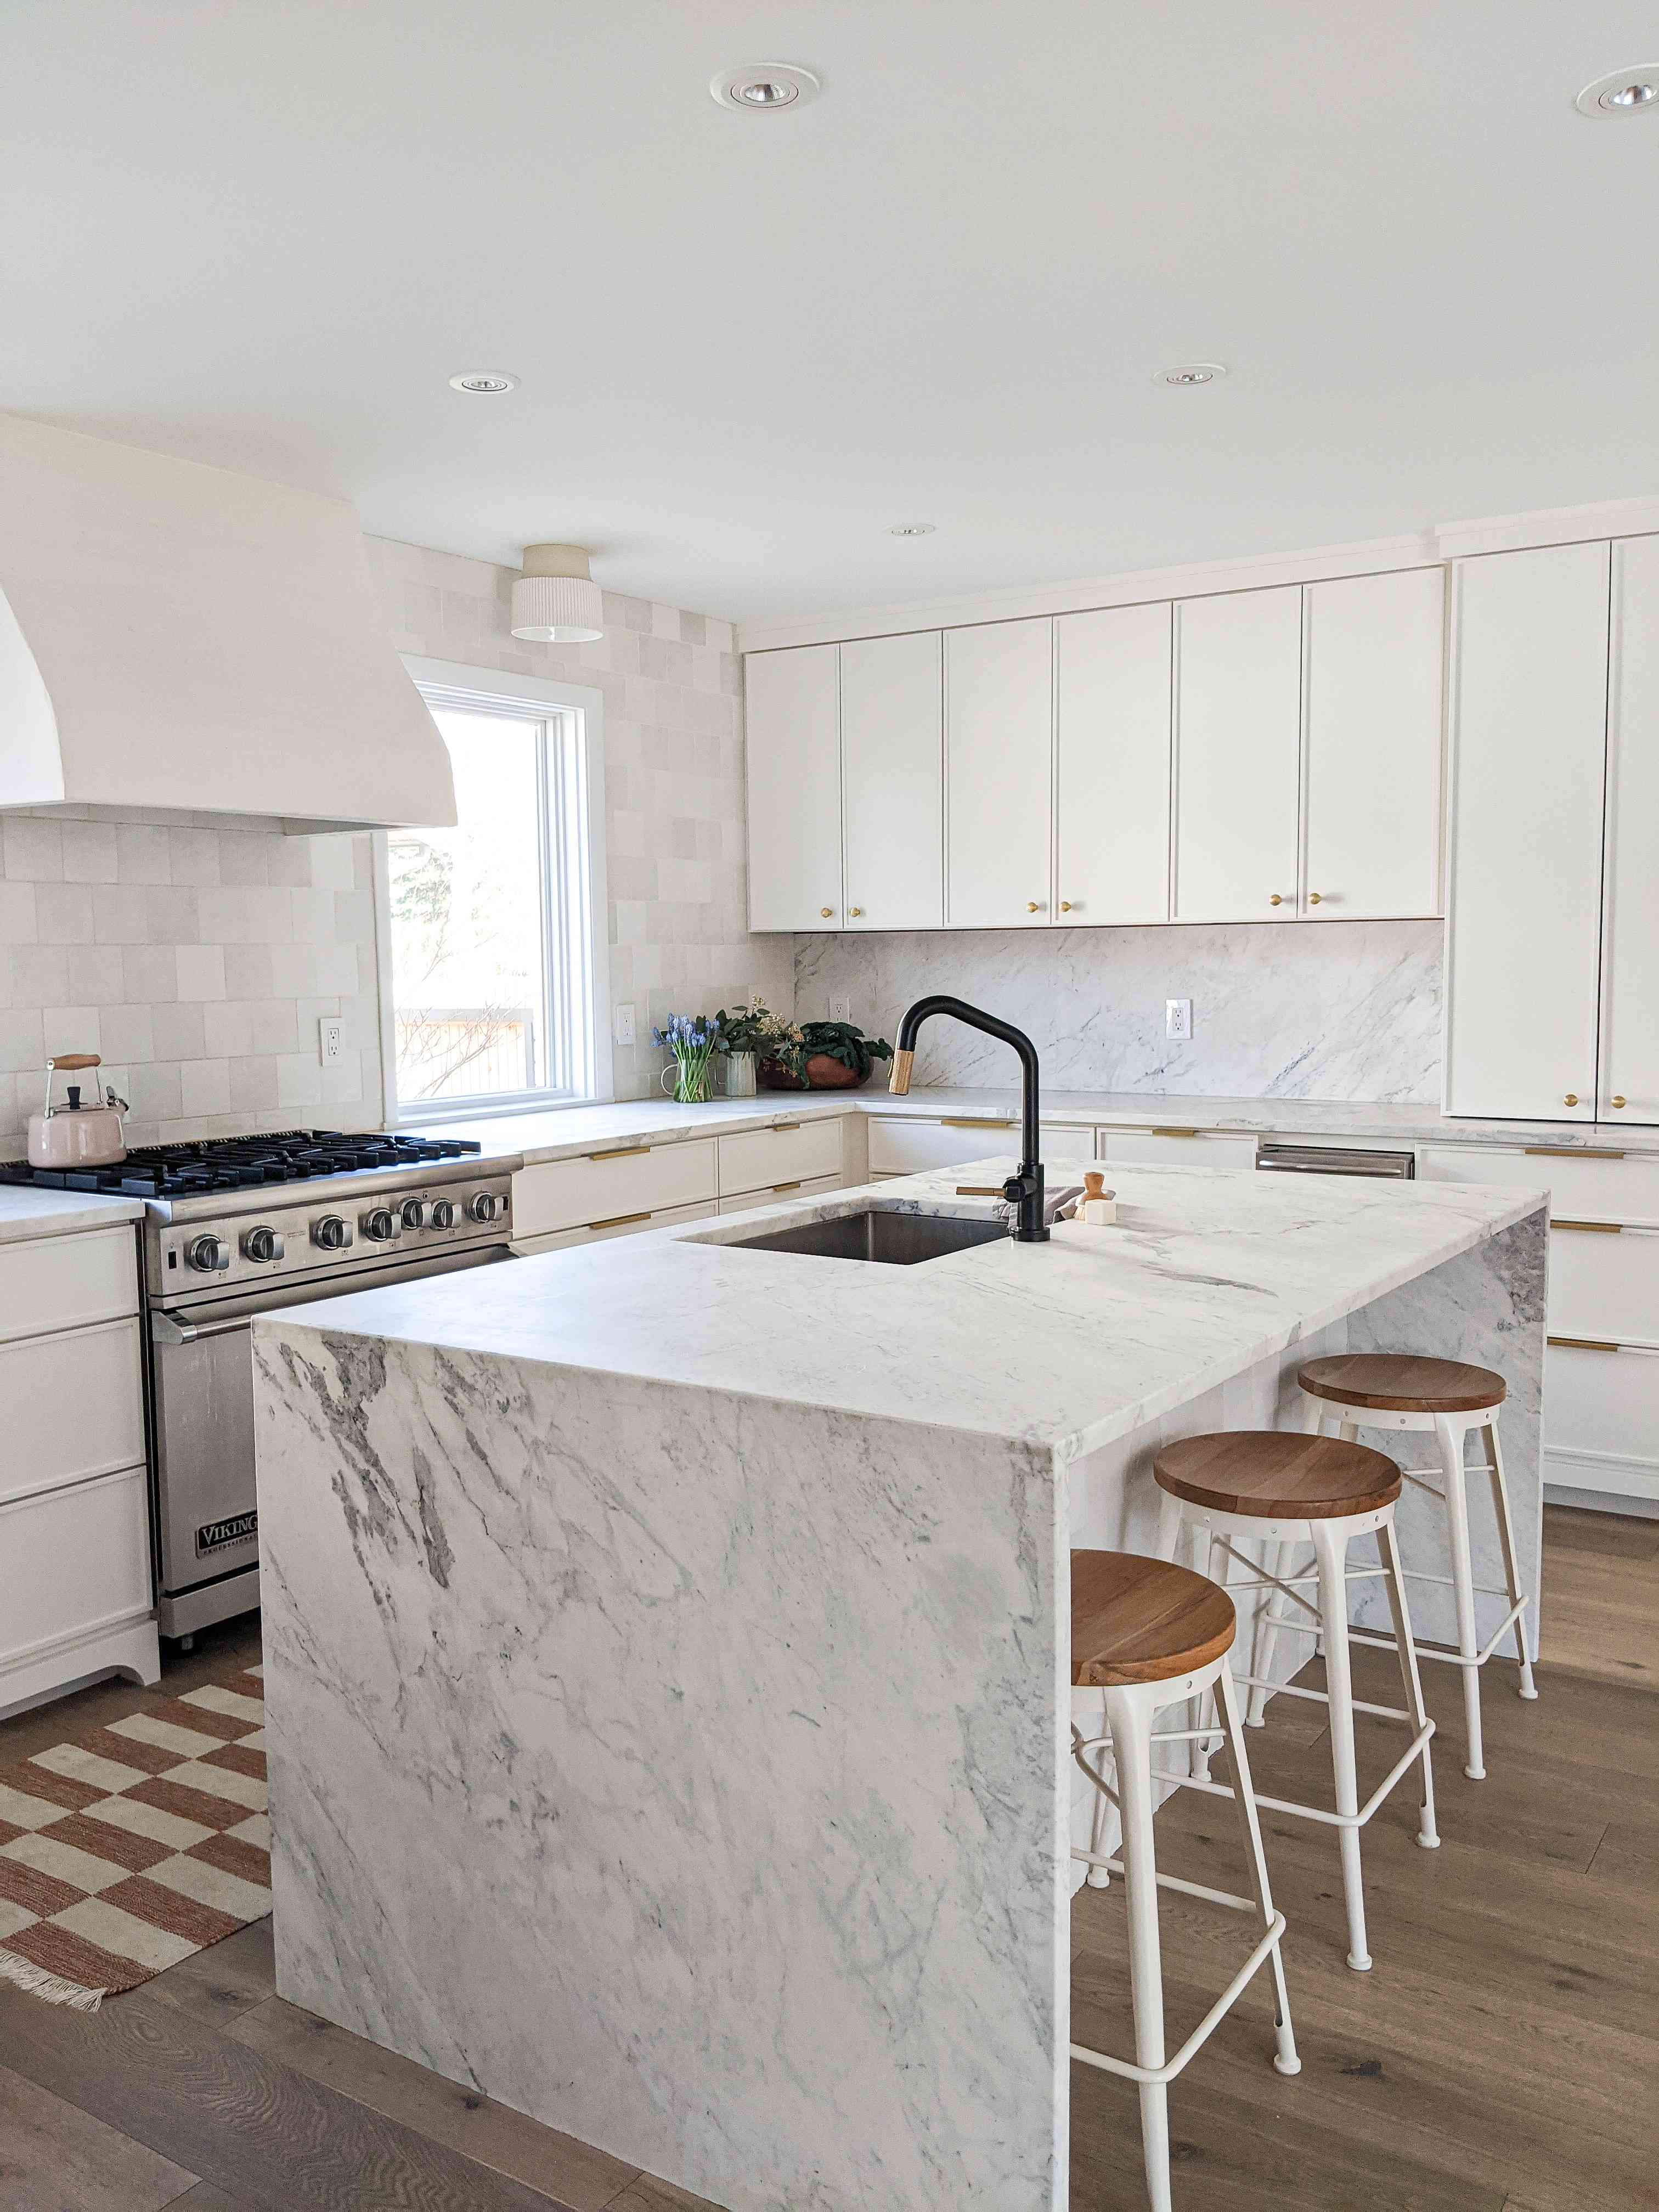 The kitchen in the Shaker Heights home of Molly & Fritz features a marble waterfall island and black hardware